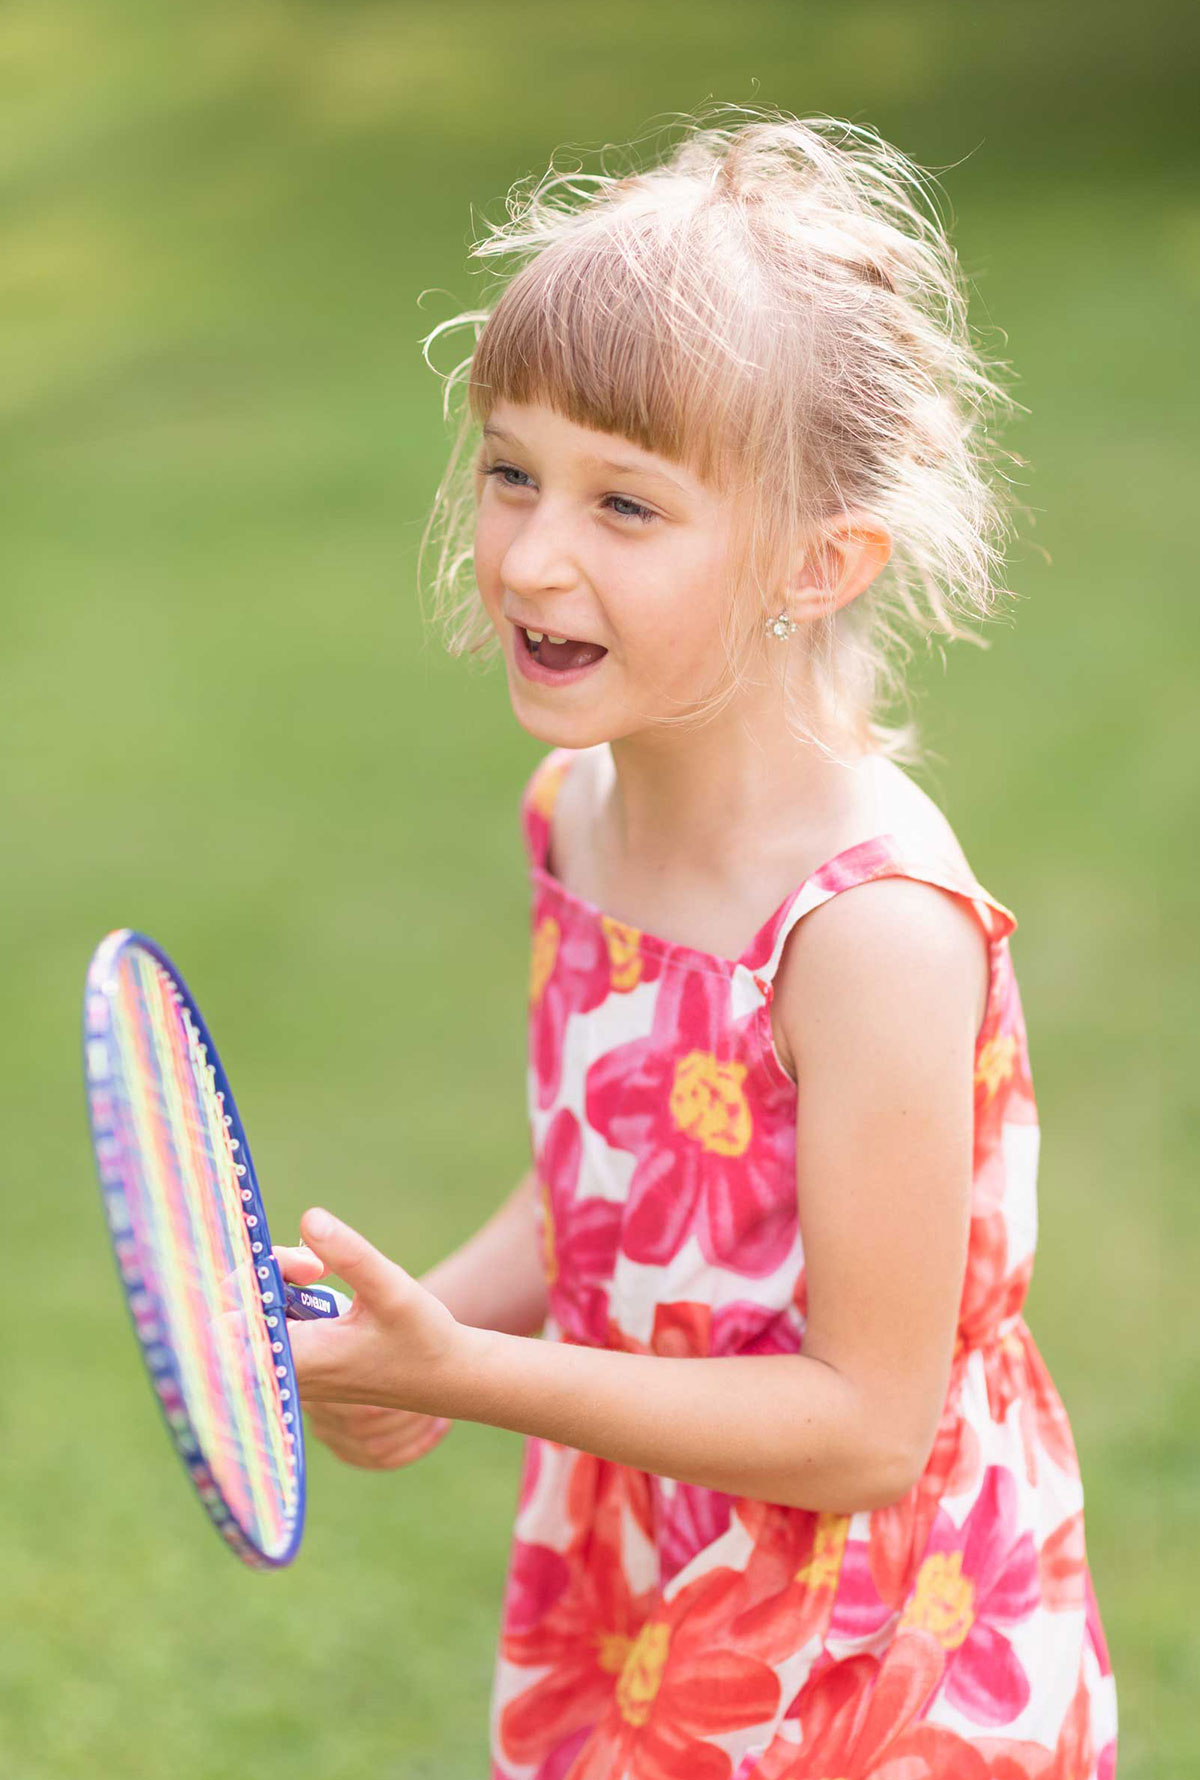 Young girl smiling with badminton racket in pink floral dress